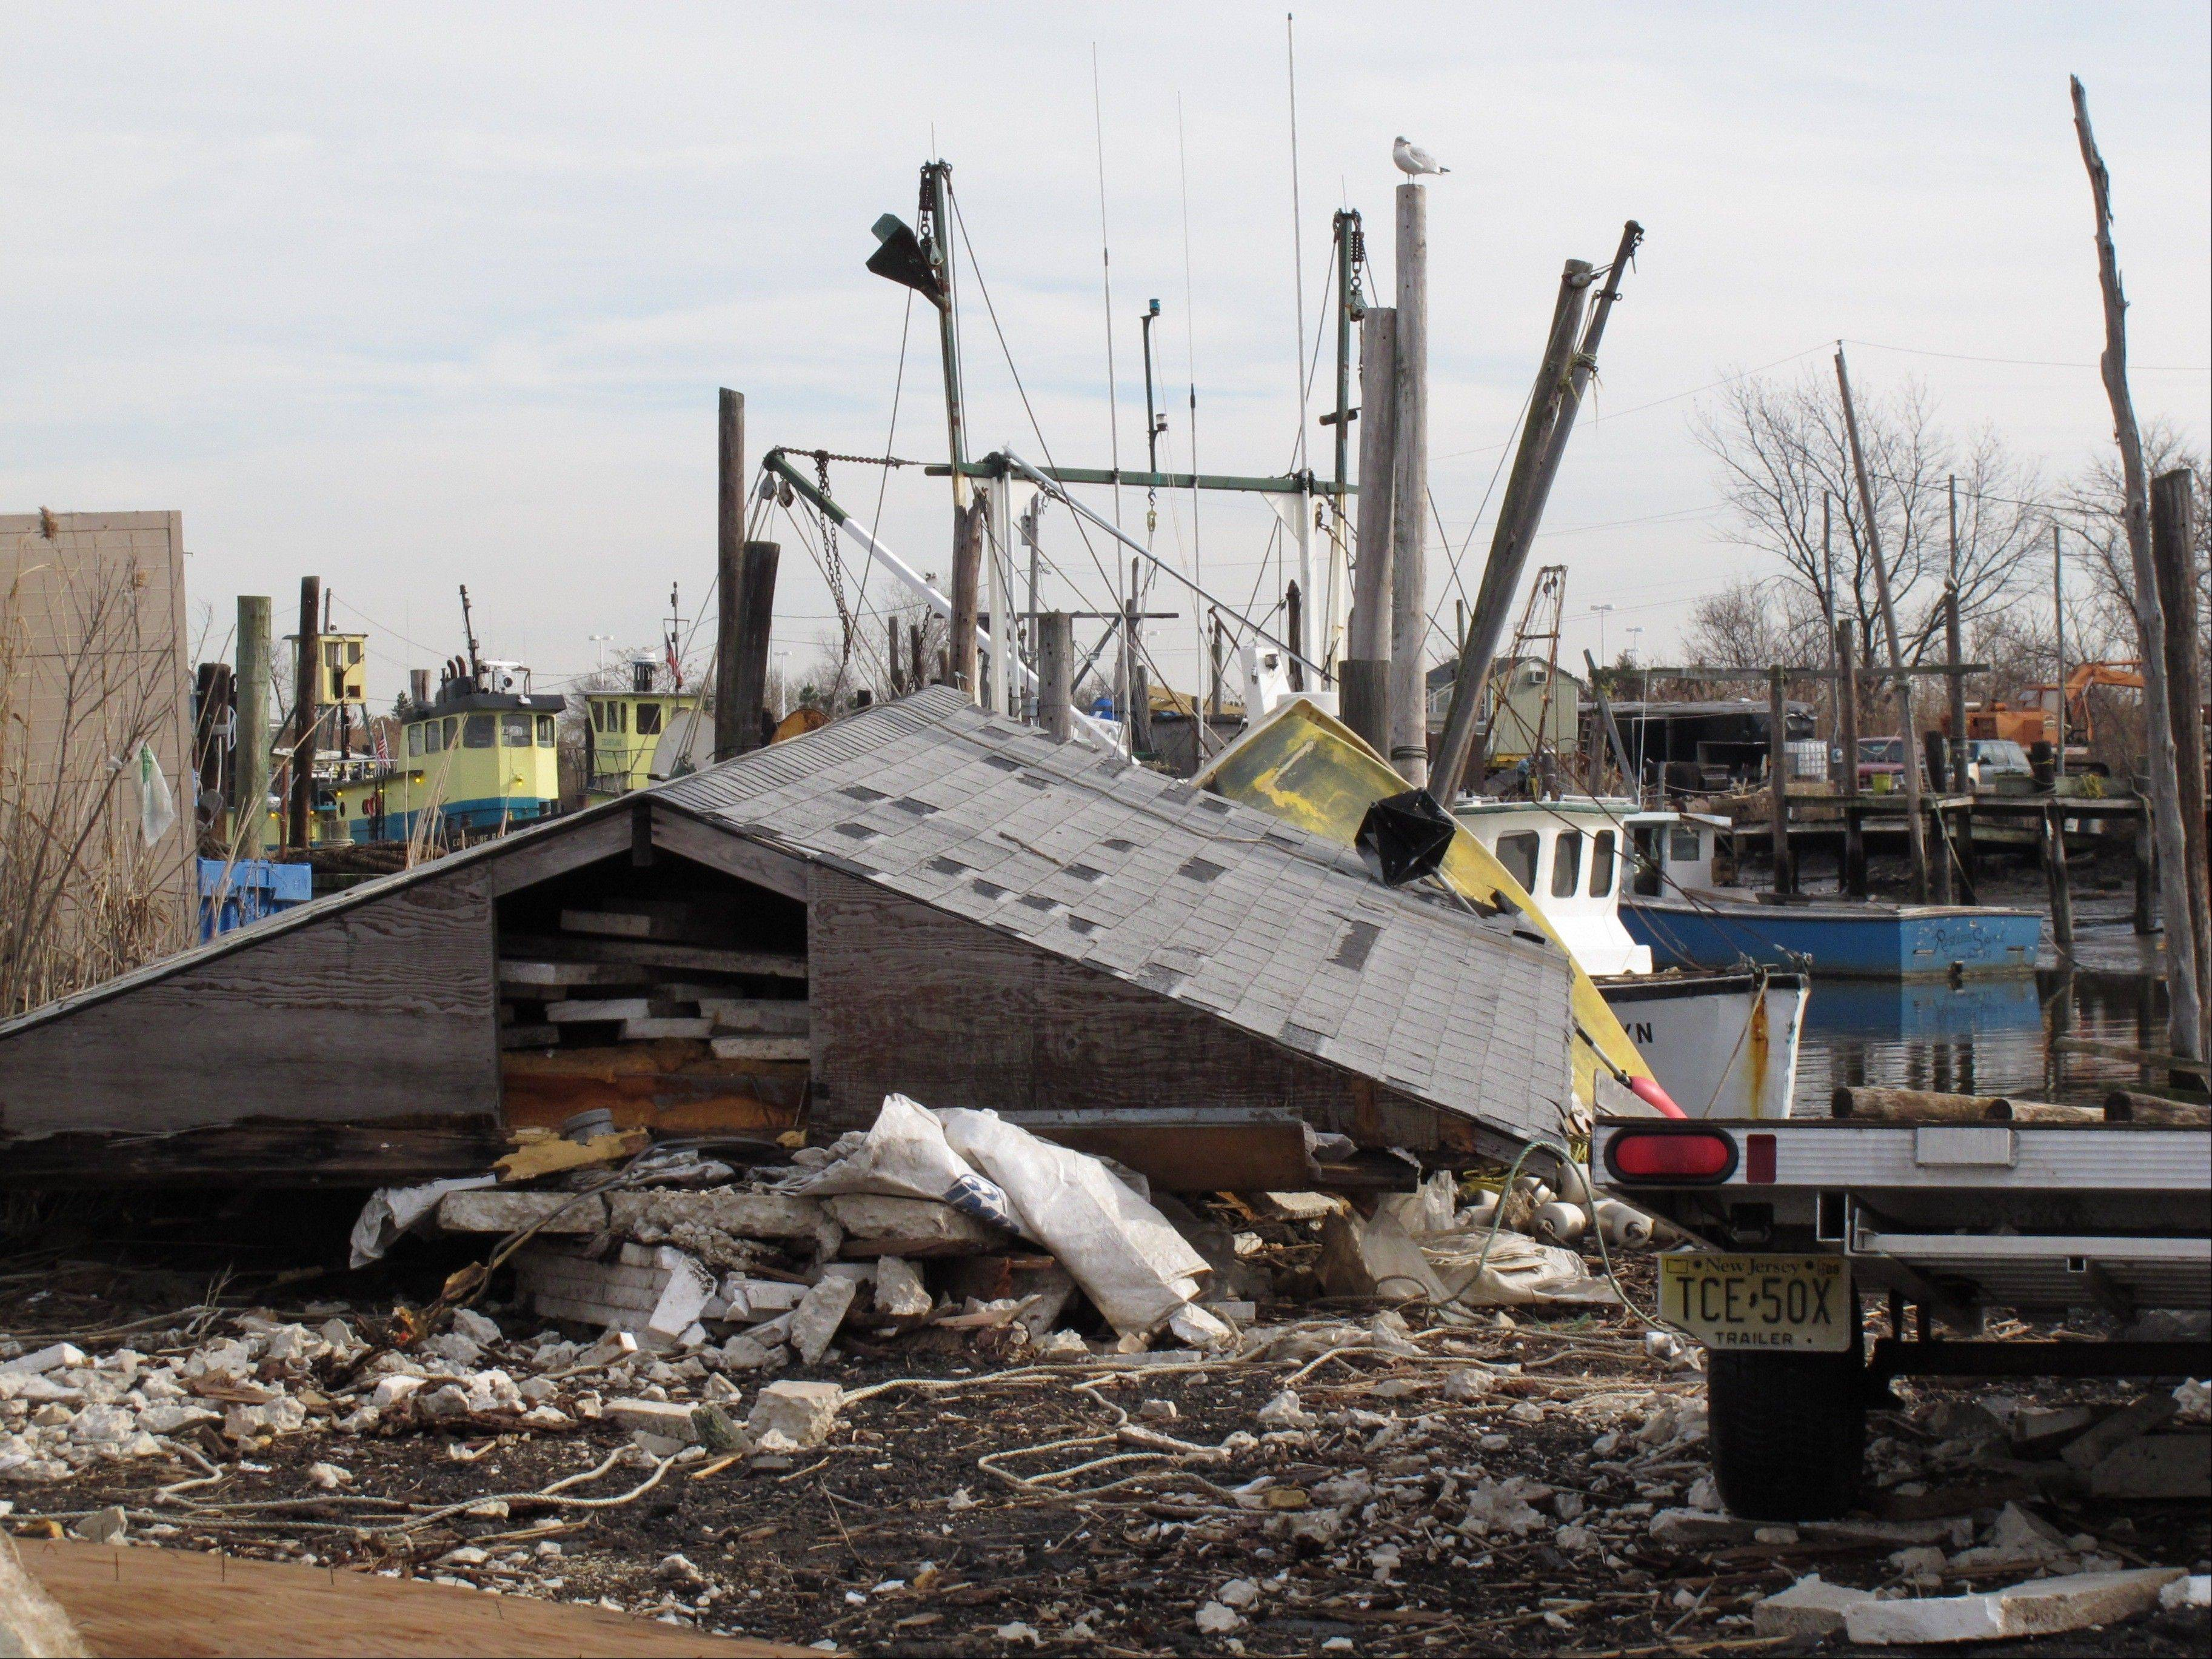 The roof of a destroyed building at the Belford fishing port in Middletown N.J., sits next to a dock.